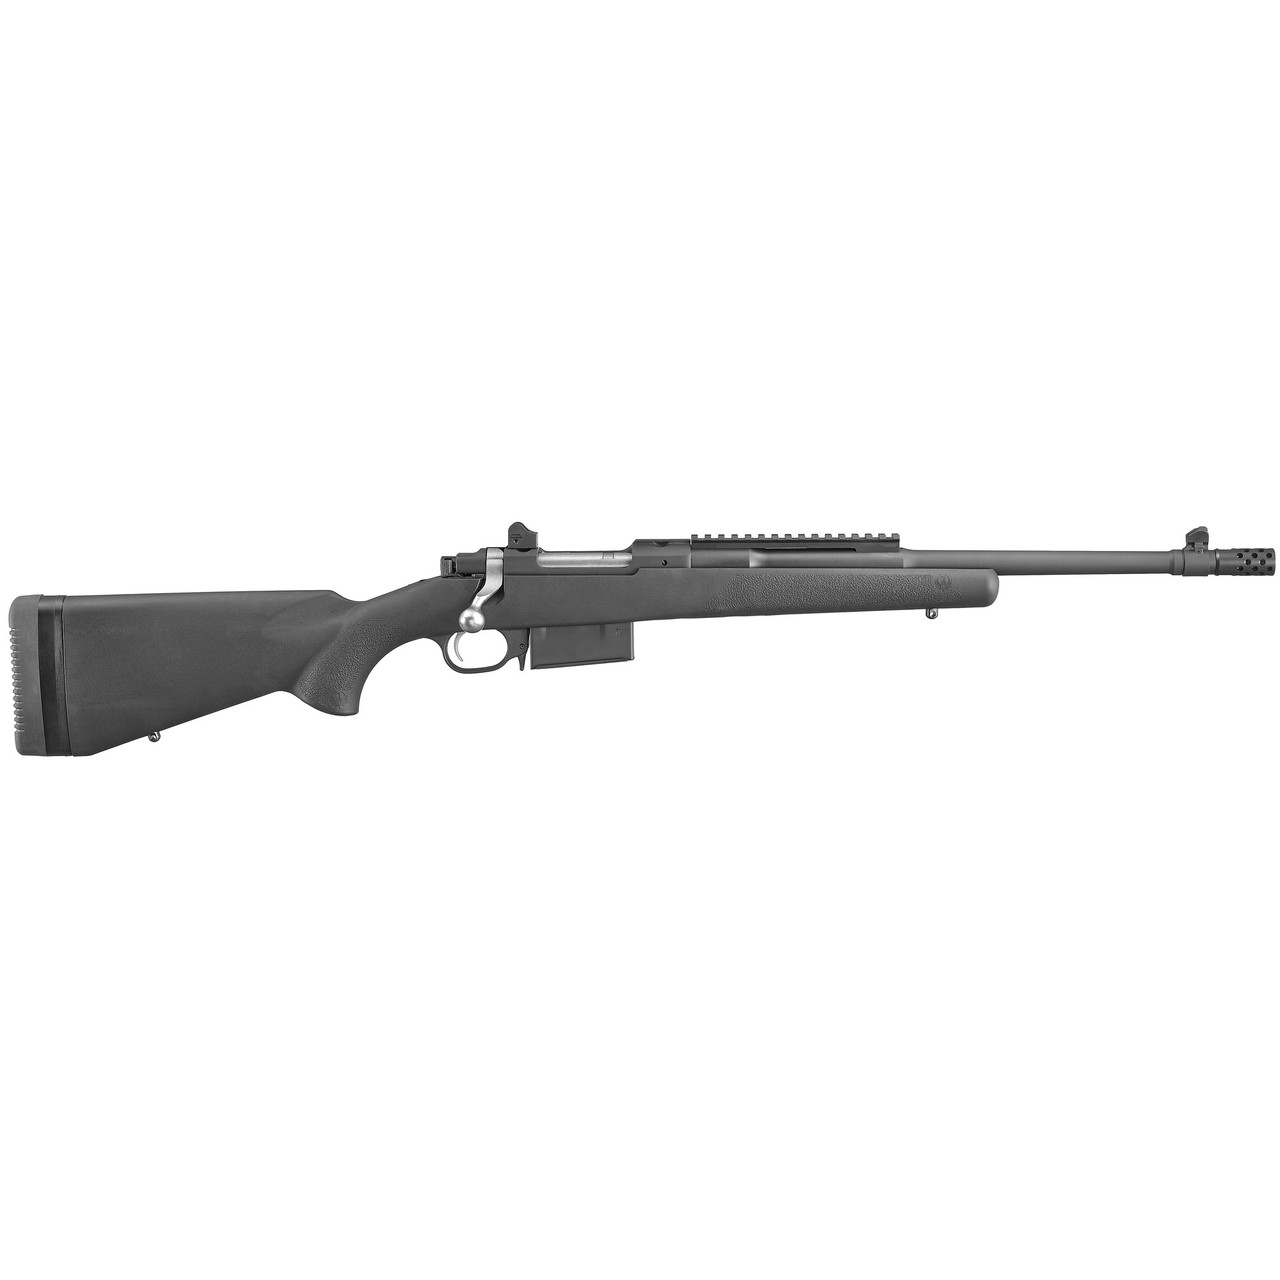 Ruger Scout Rifle CALIFORNIA LEGAL - .350 Legend